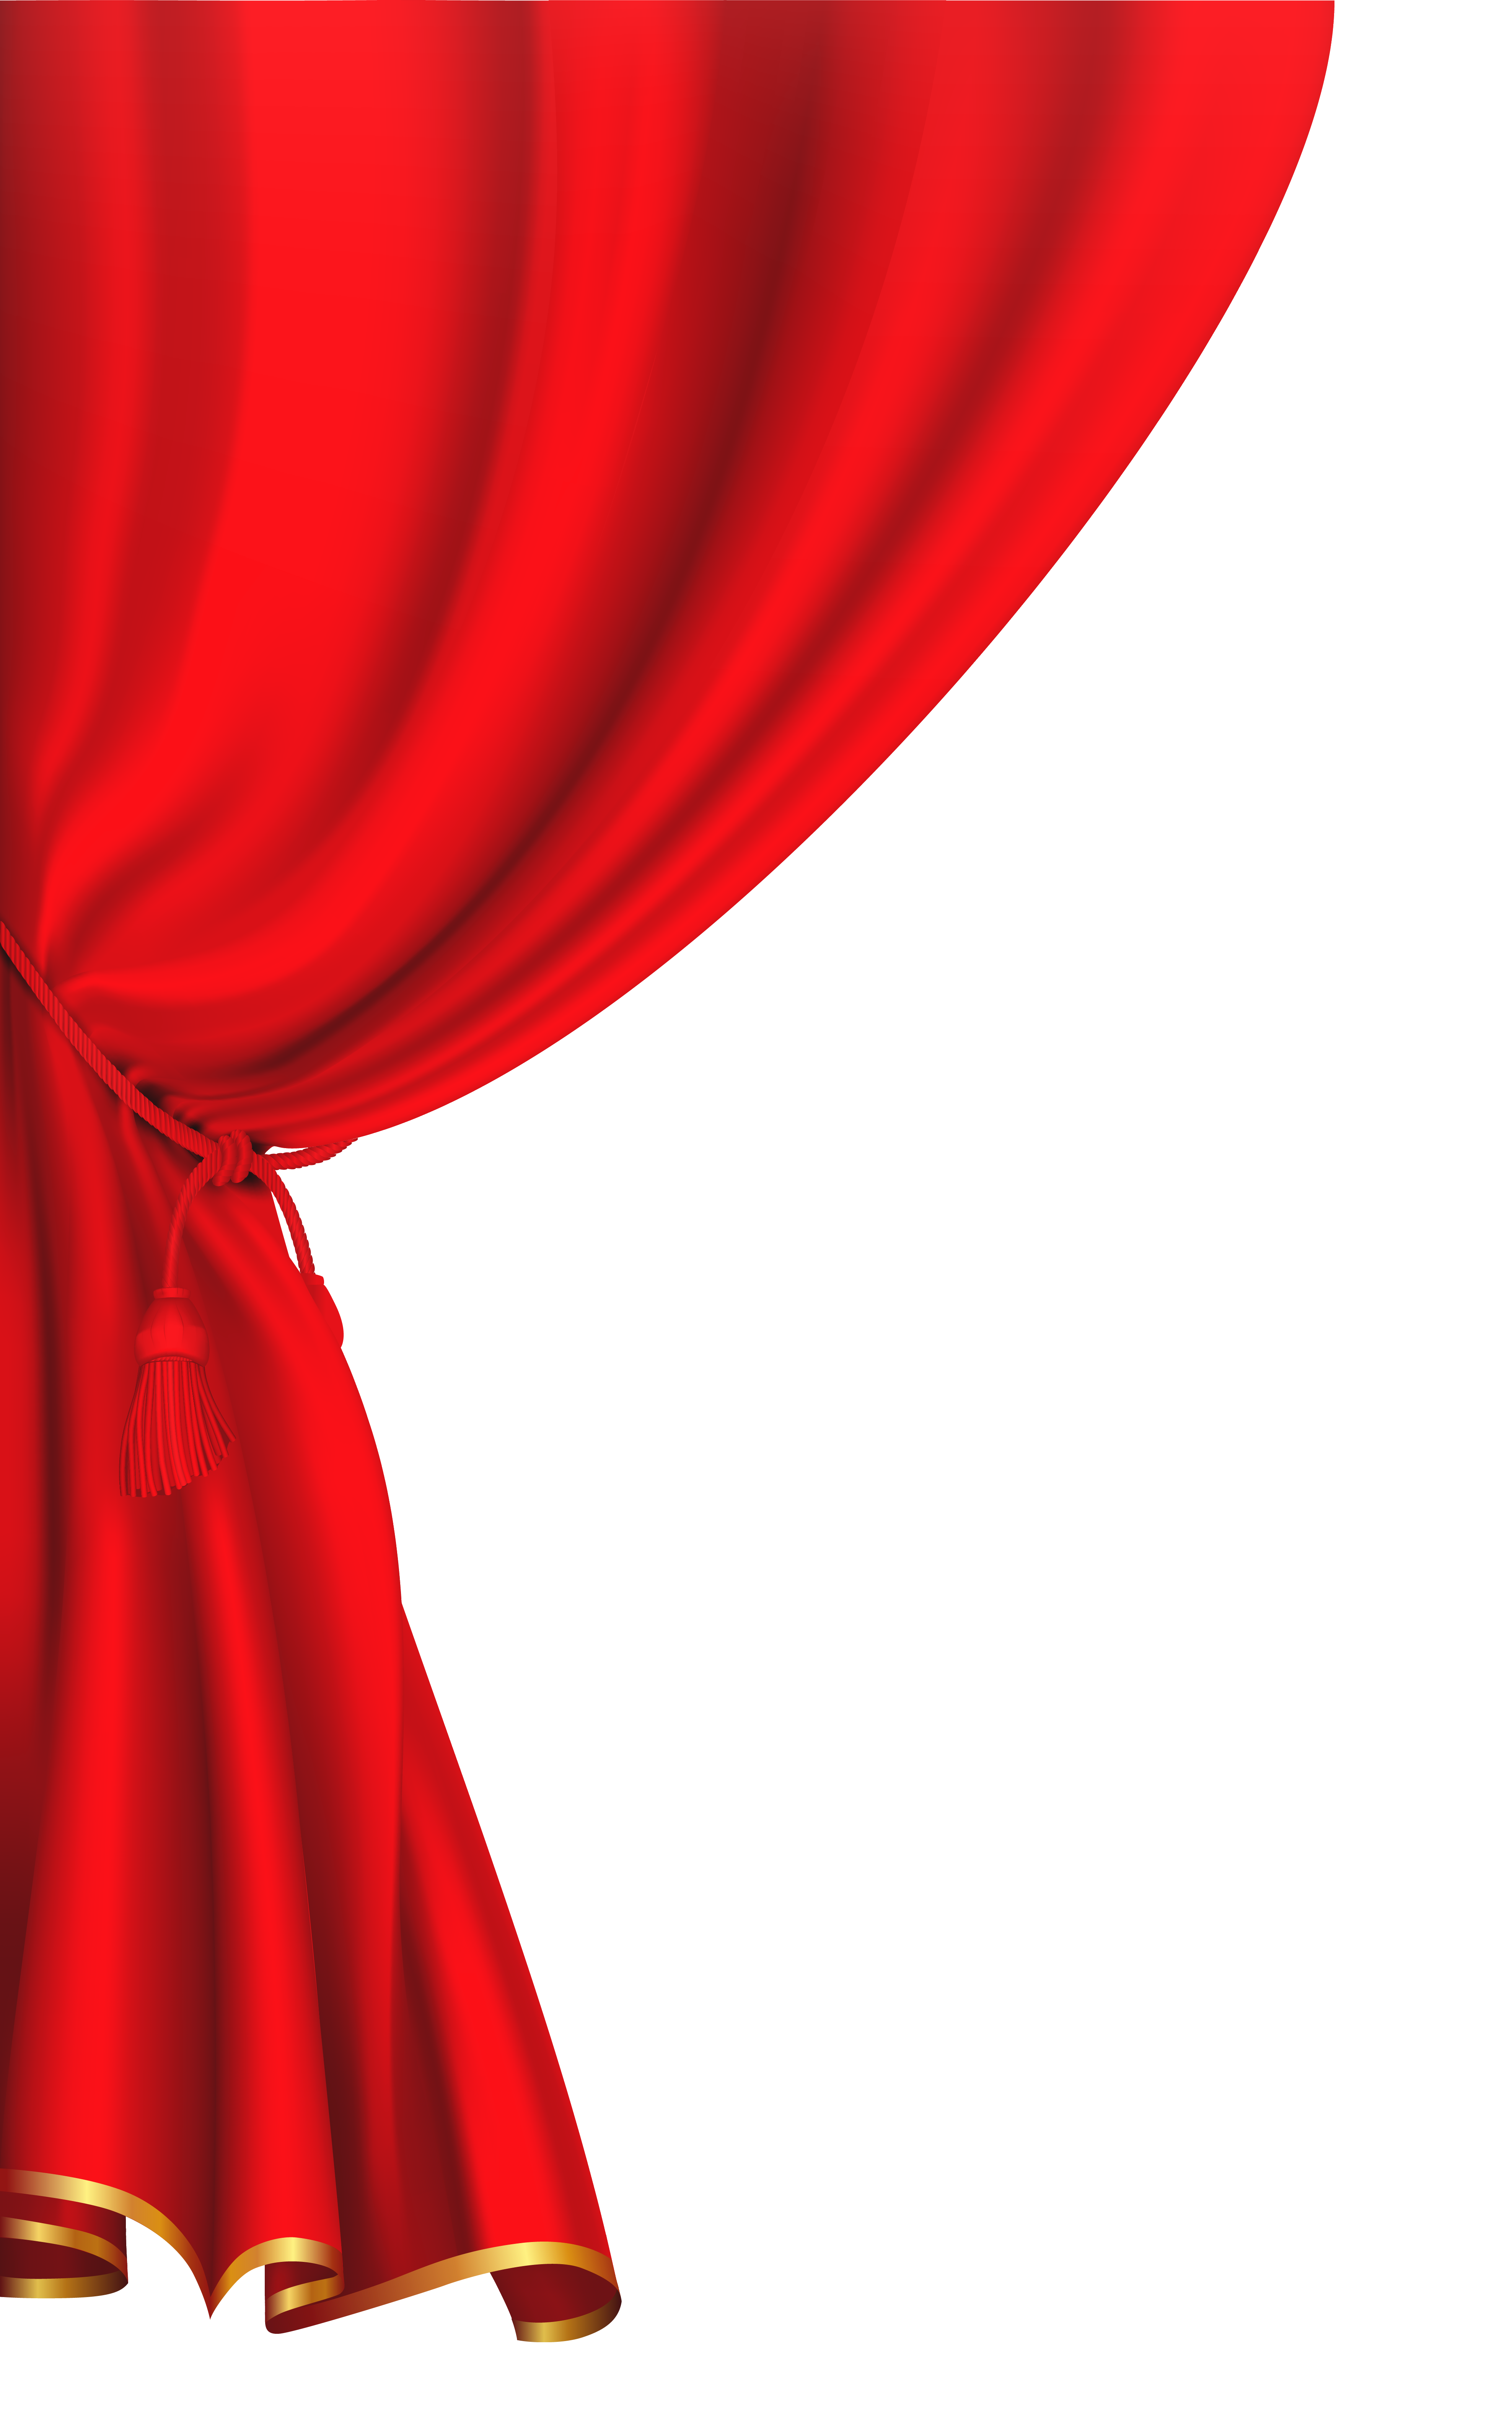 Light Curtains Png Images